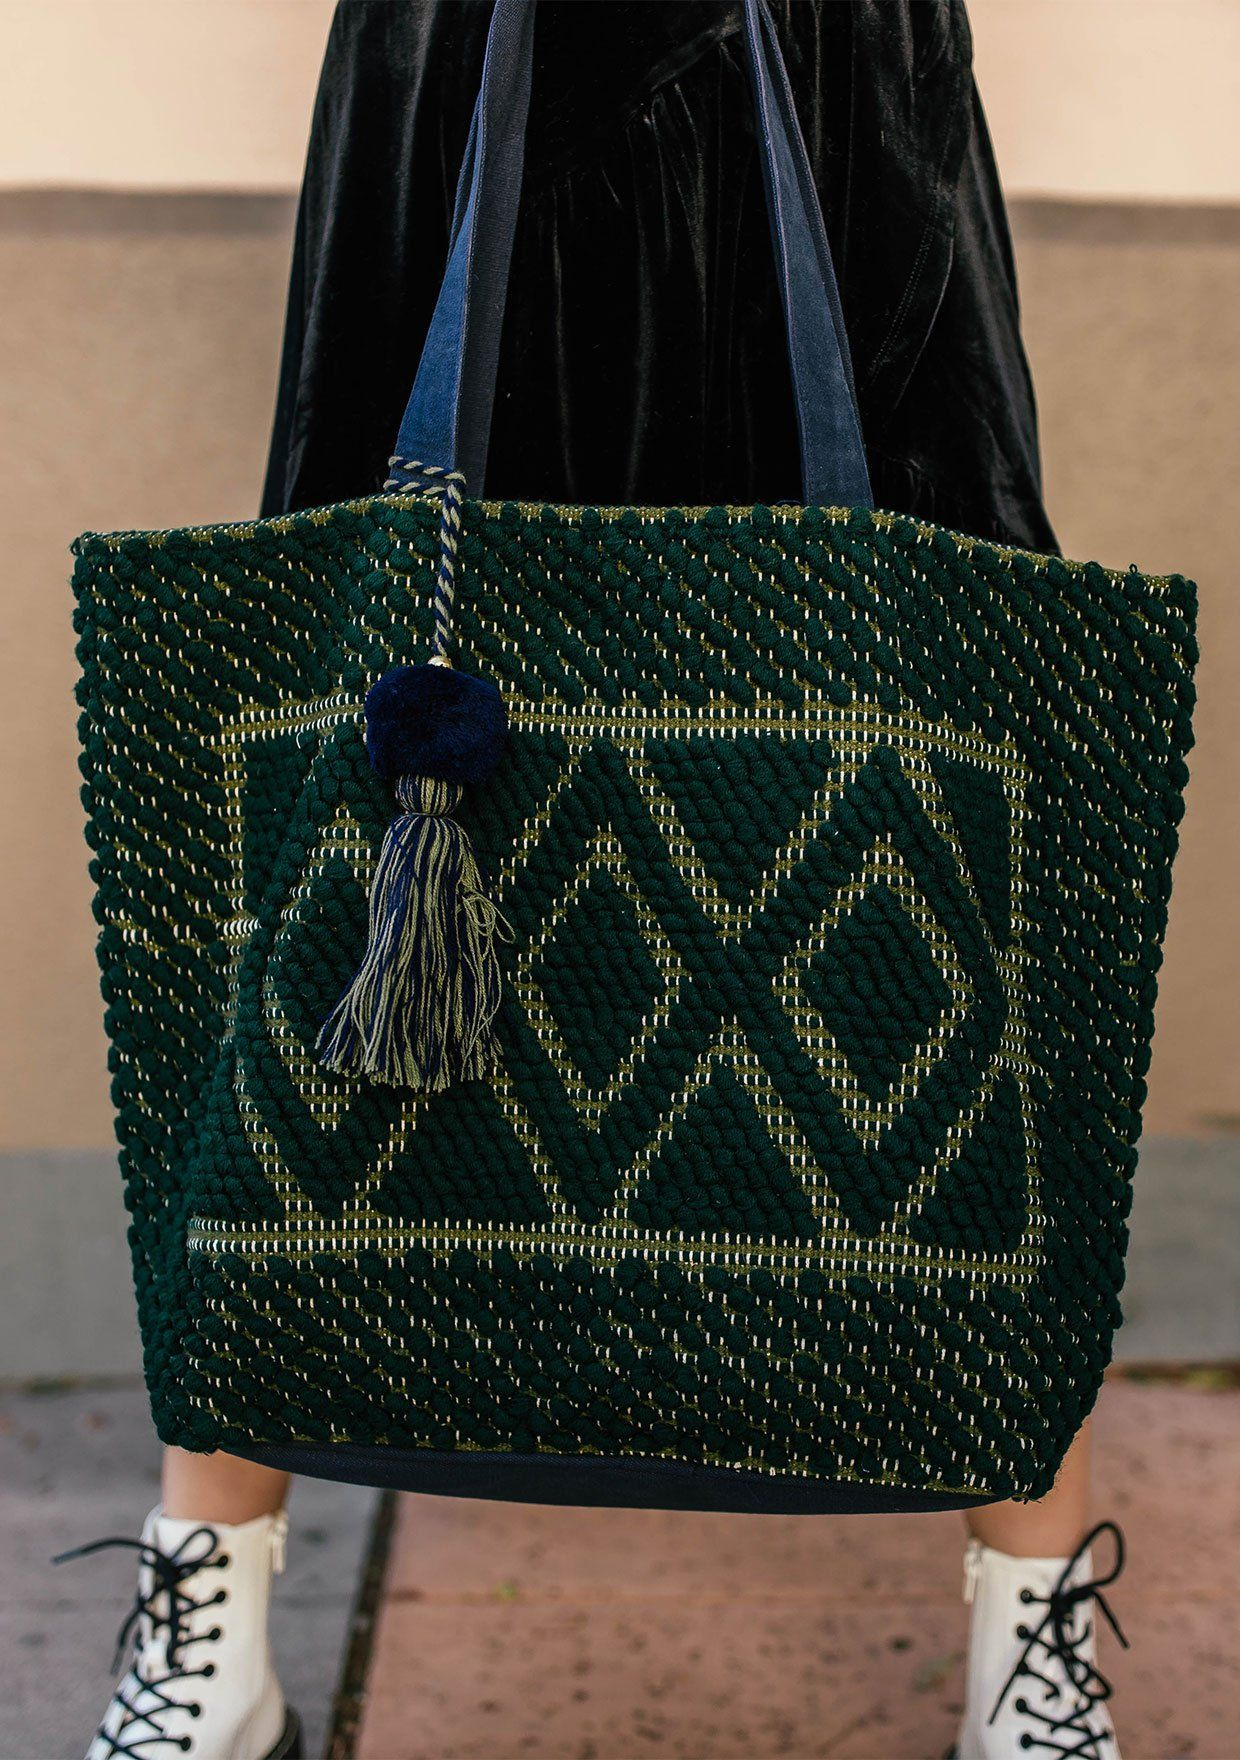 [Color: Forest Navy] A totally groovy bag for all your adventures. This bohemian tote features a diamond woven pattern and pompom tassel accents.